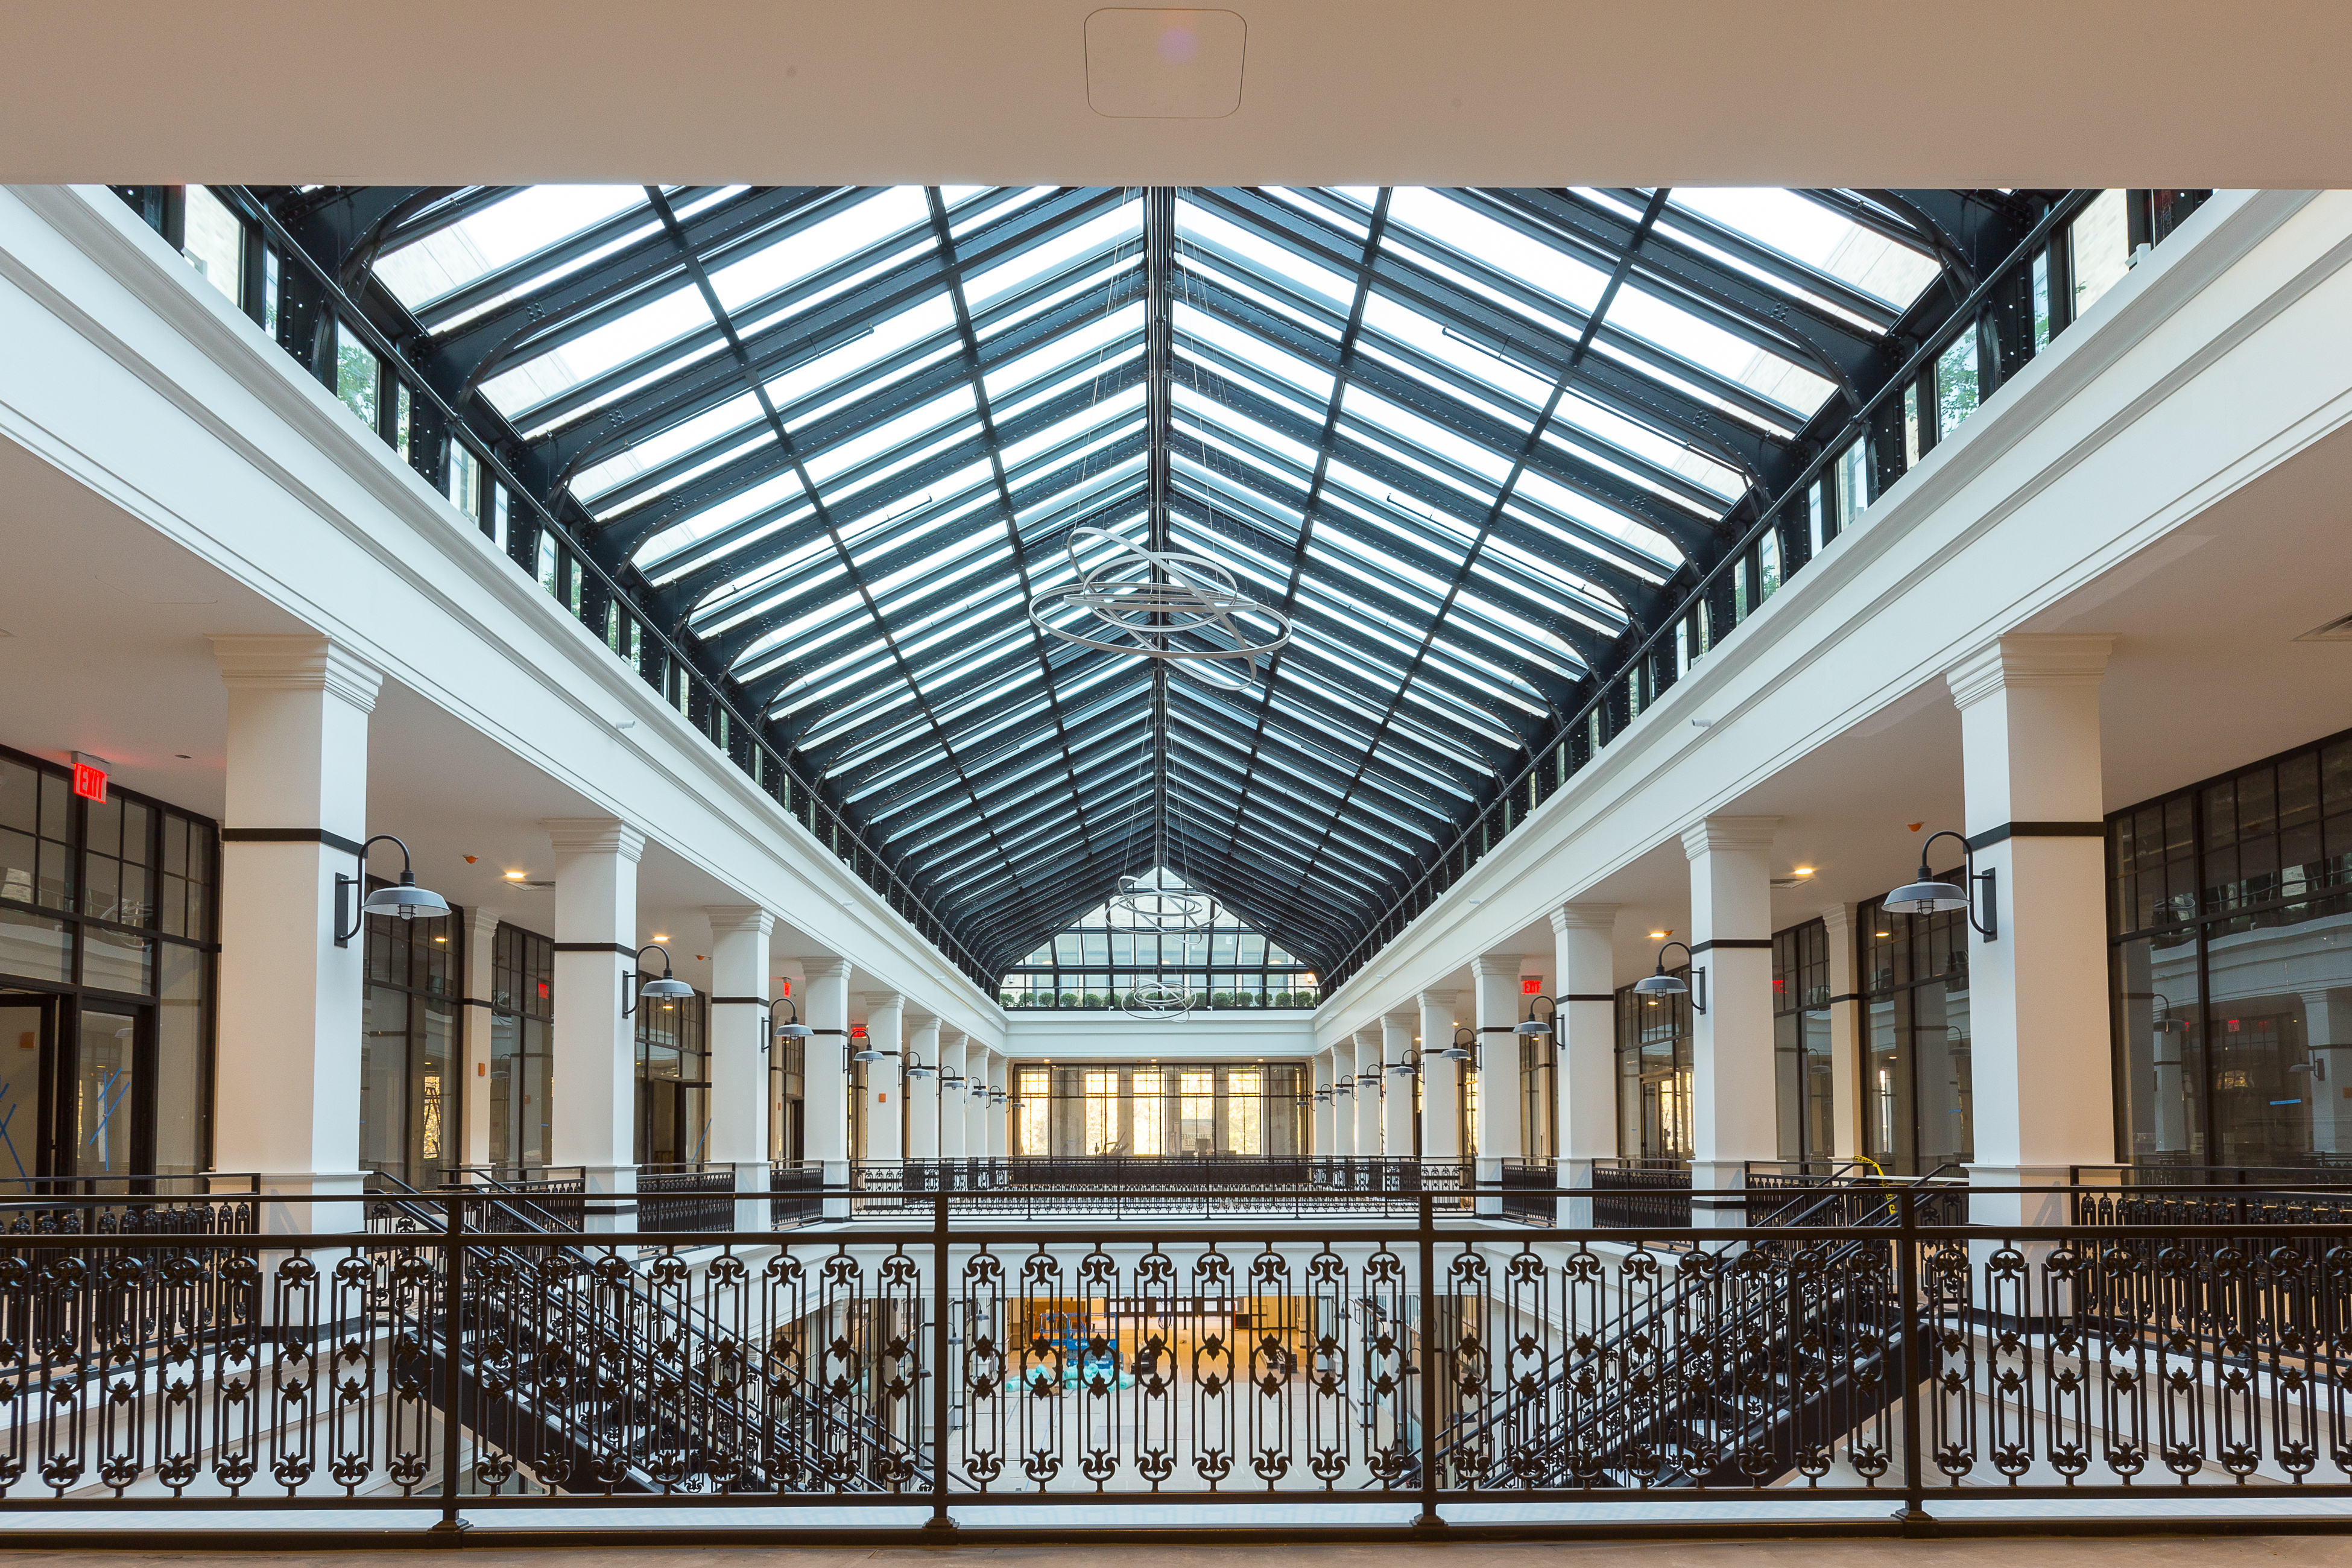 The Hahne & Co. building's stunning skylight was restored pane-by-pane and can be enjoyed for the first time in 70 years. (Photo credit: Sylvester Zawadzki)